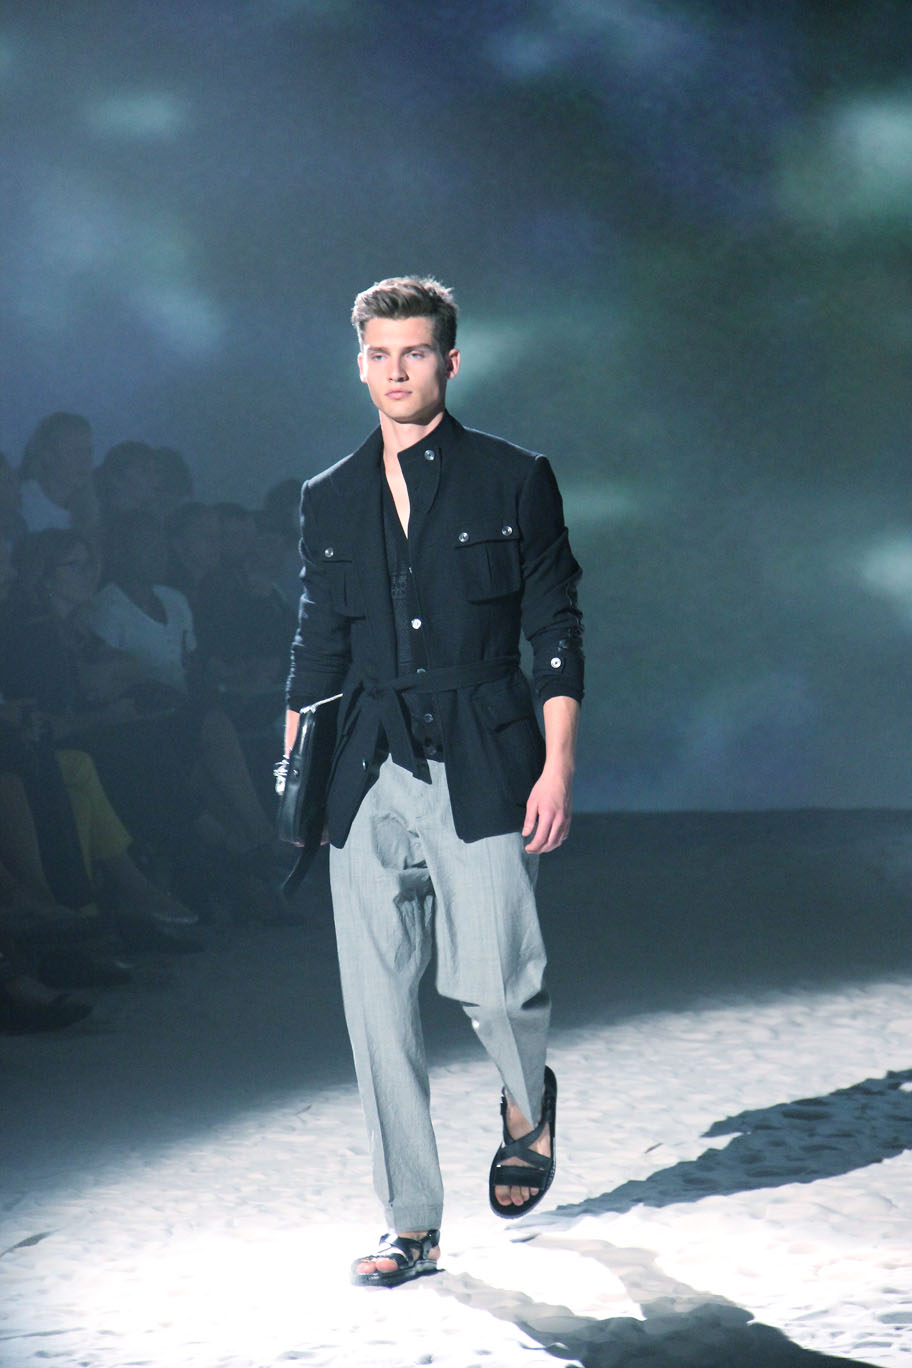 spring-summer-corneliani-2012-men-collection-milano-fashion-week-2012-corneliani-fashion-show-catwalk